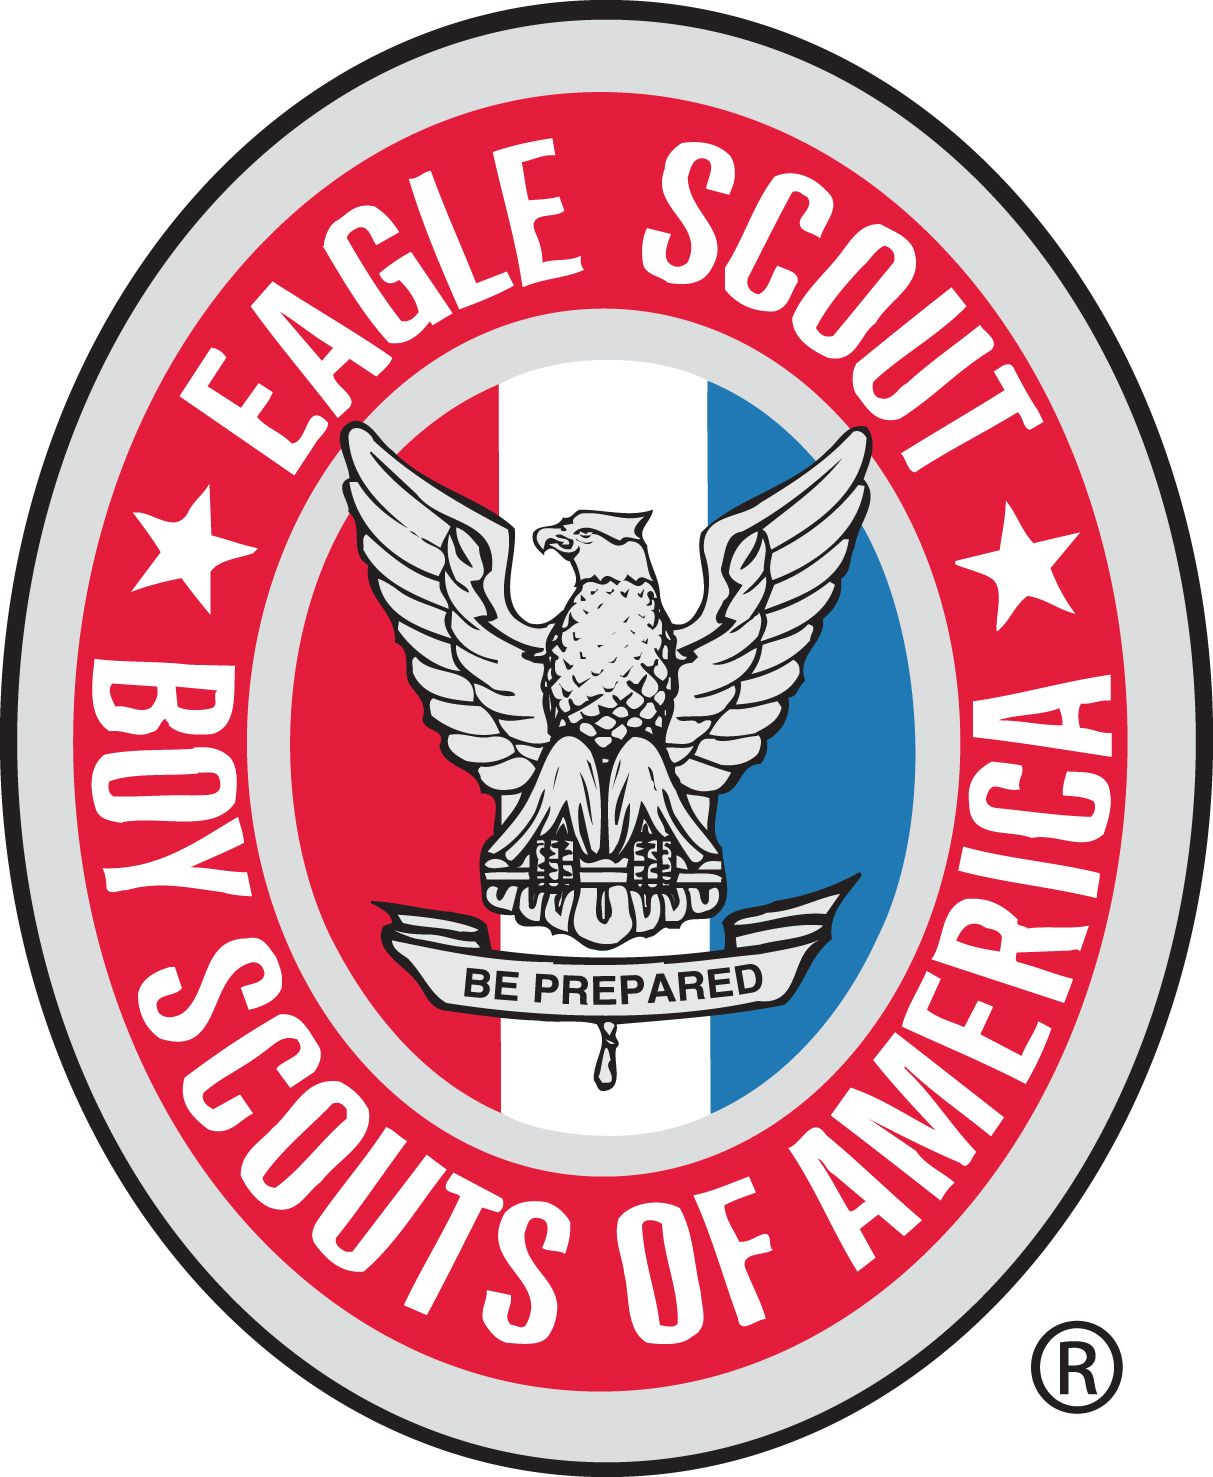 medium resolution of eagle scout badge boy scout troop scout badges scout mom cub scouts